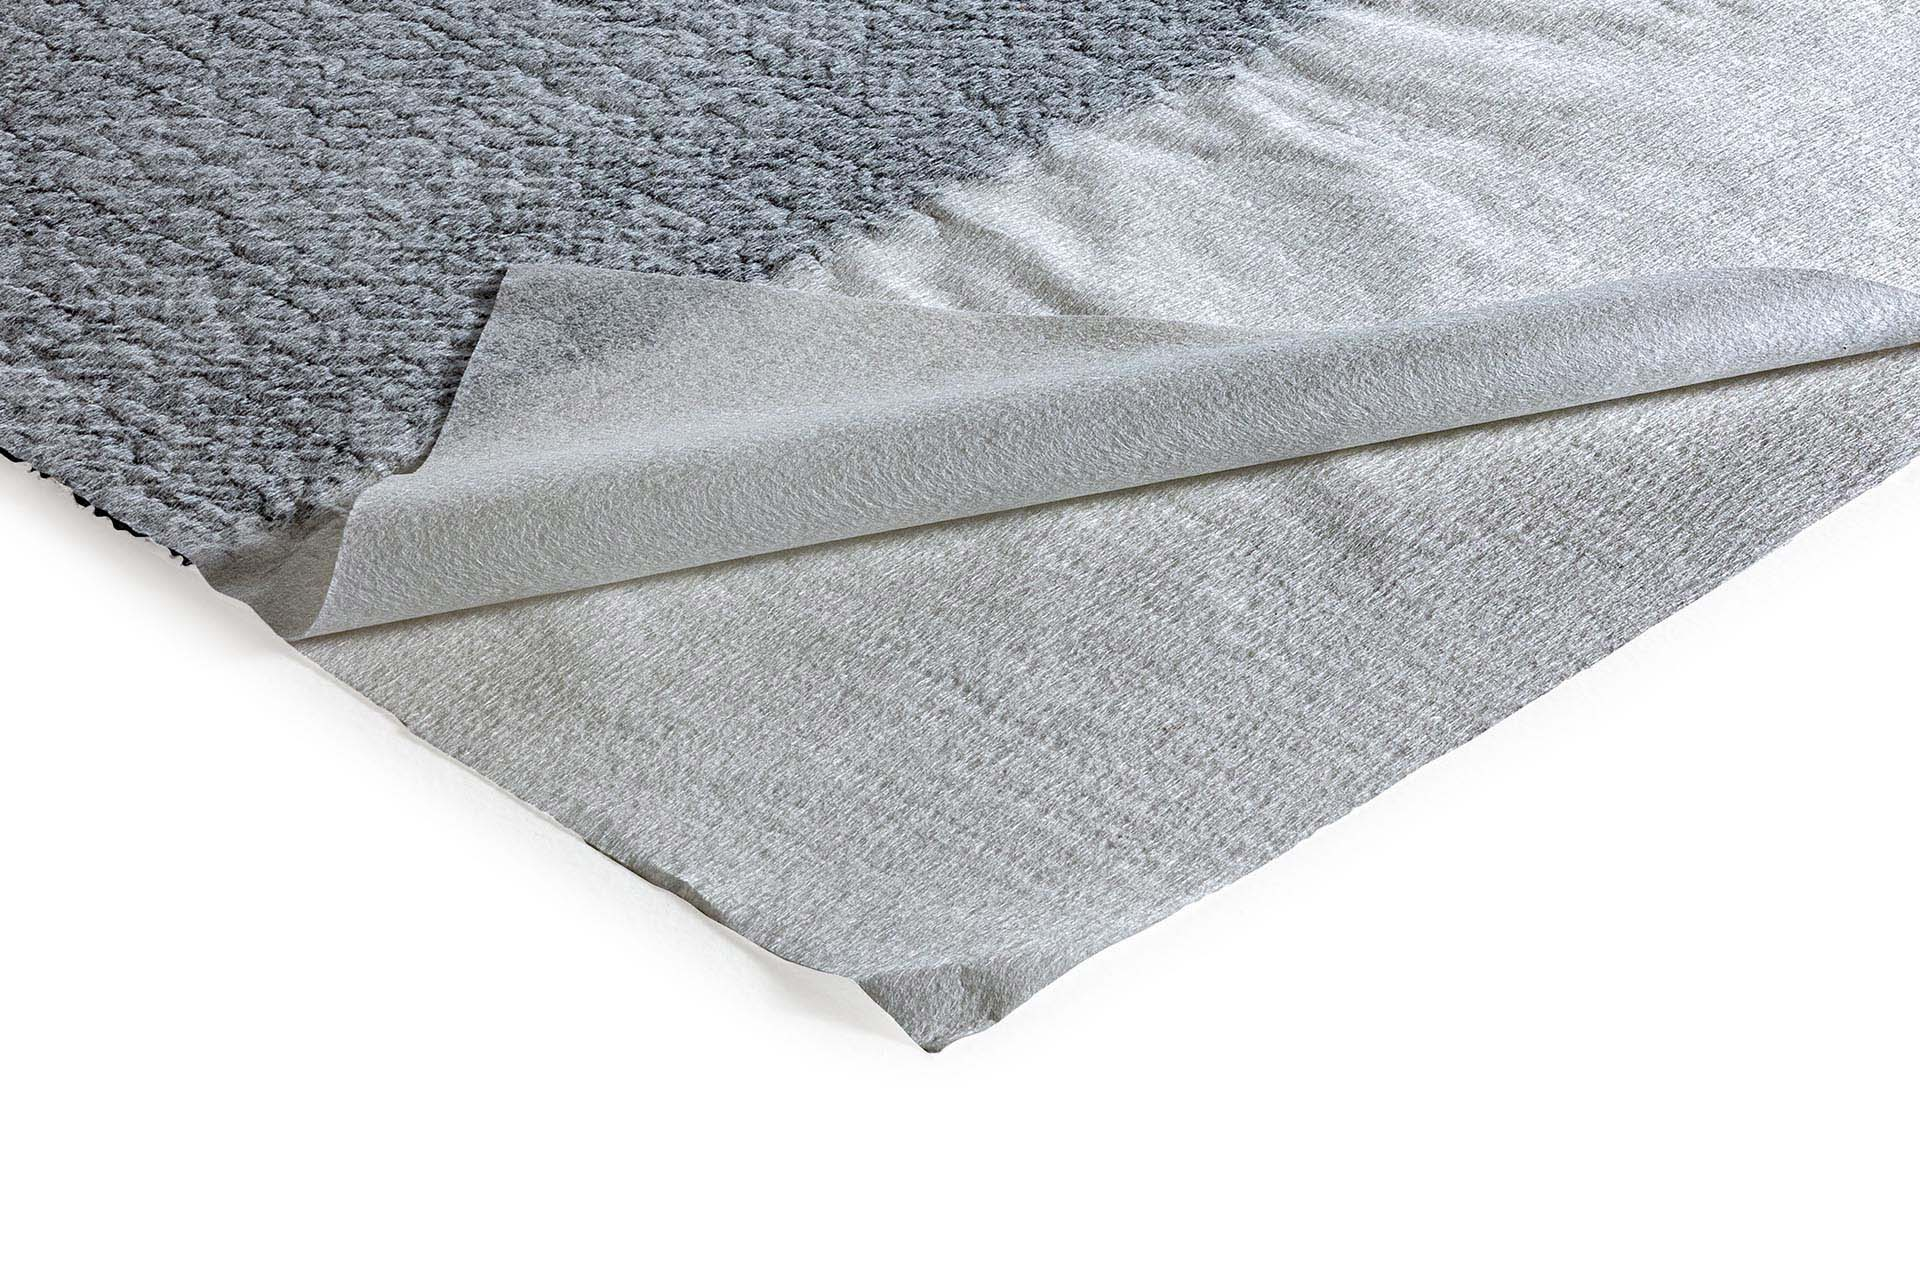 Drainage geocomposite: core of monofilaments, bonded to 2 filtering nonwoven geotextiles